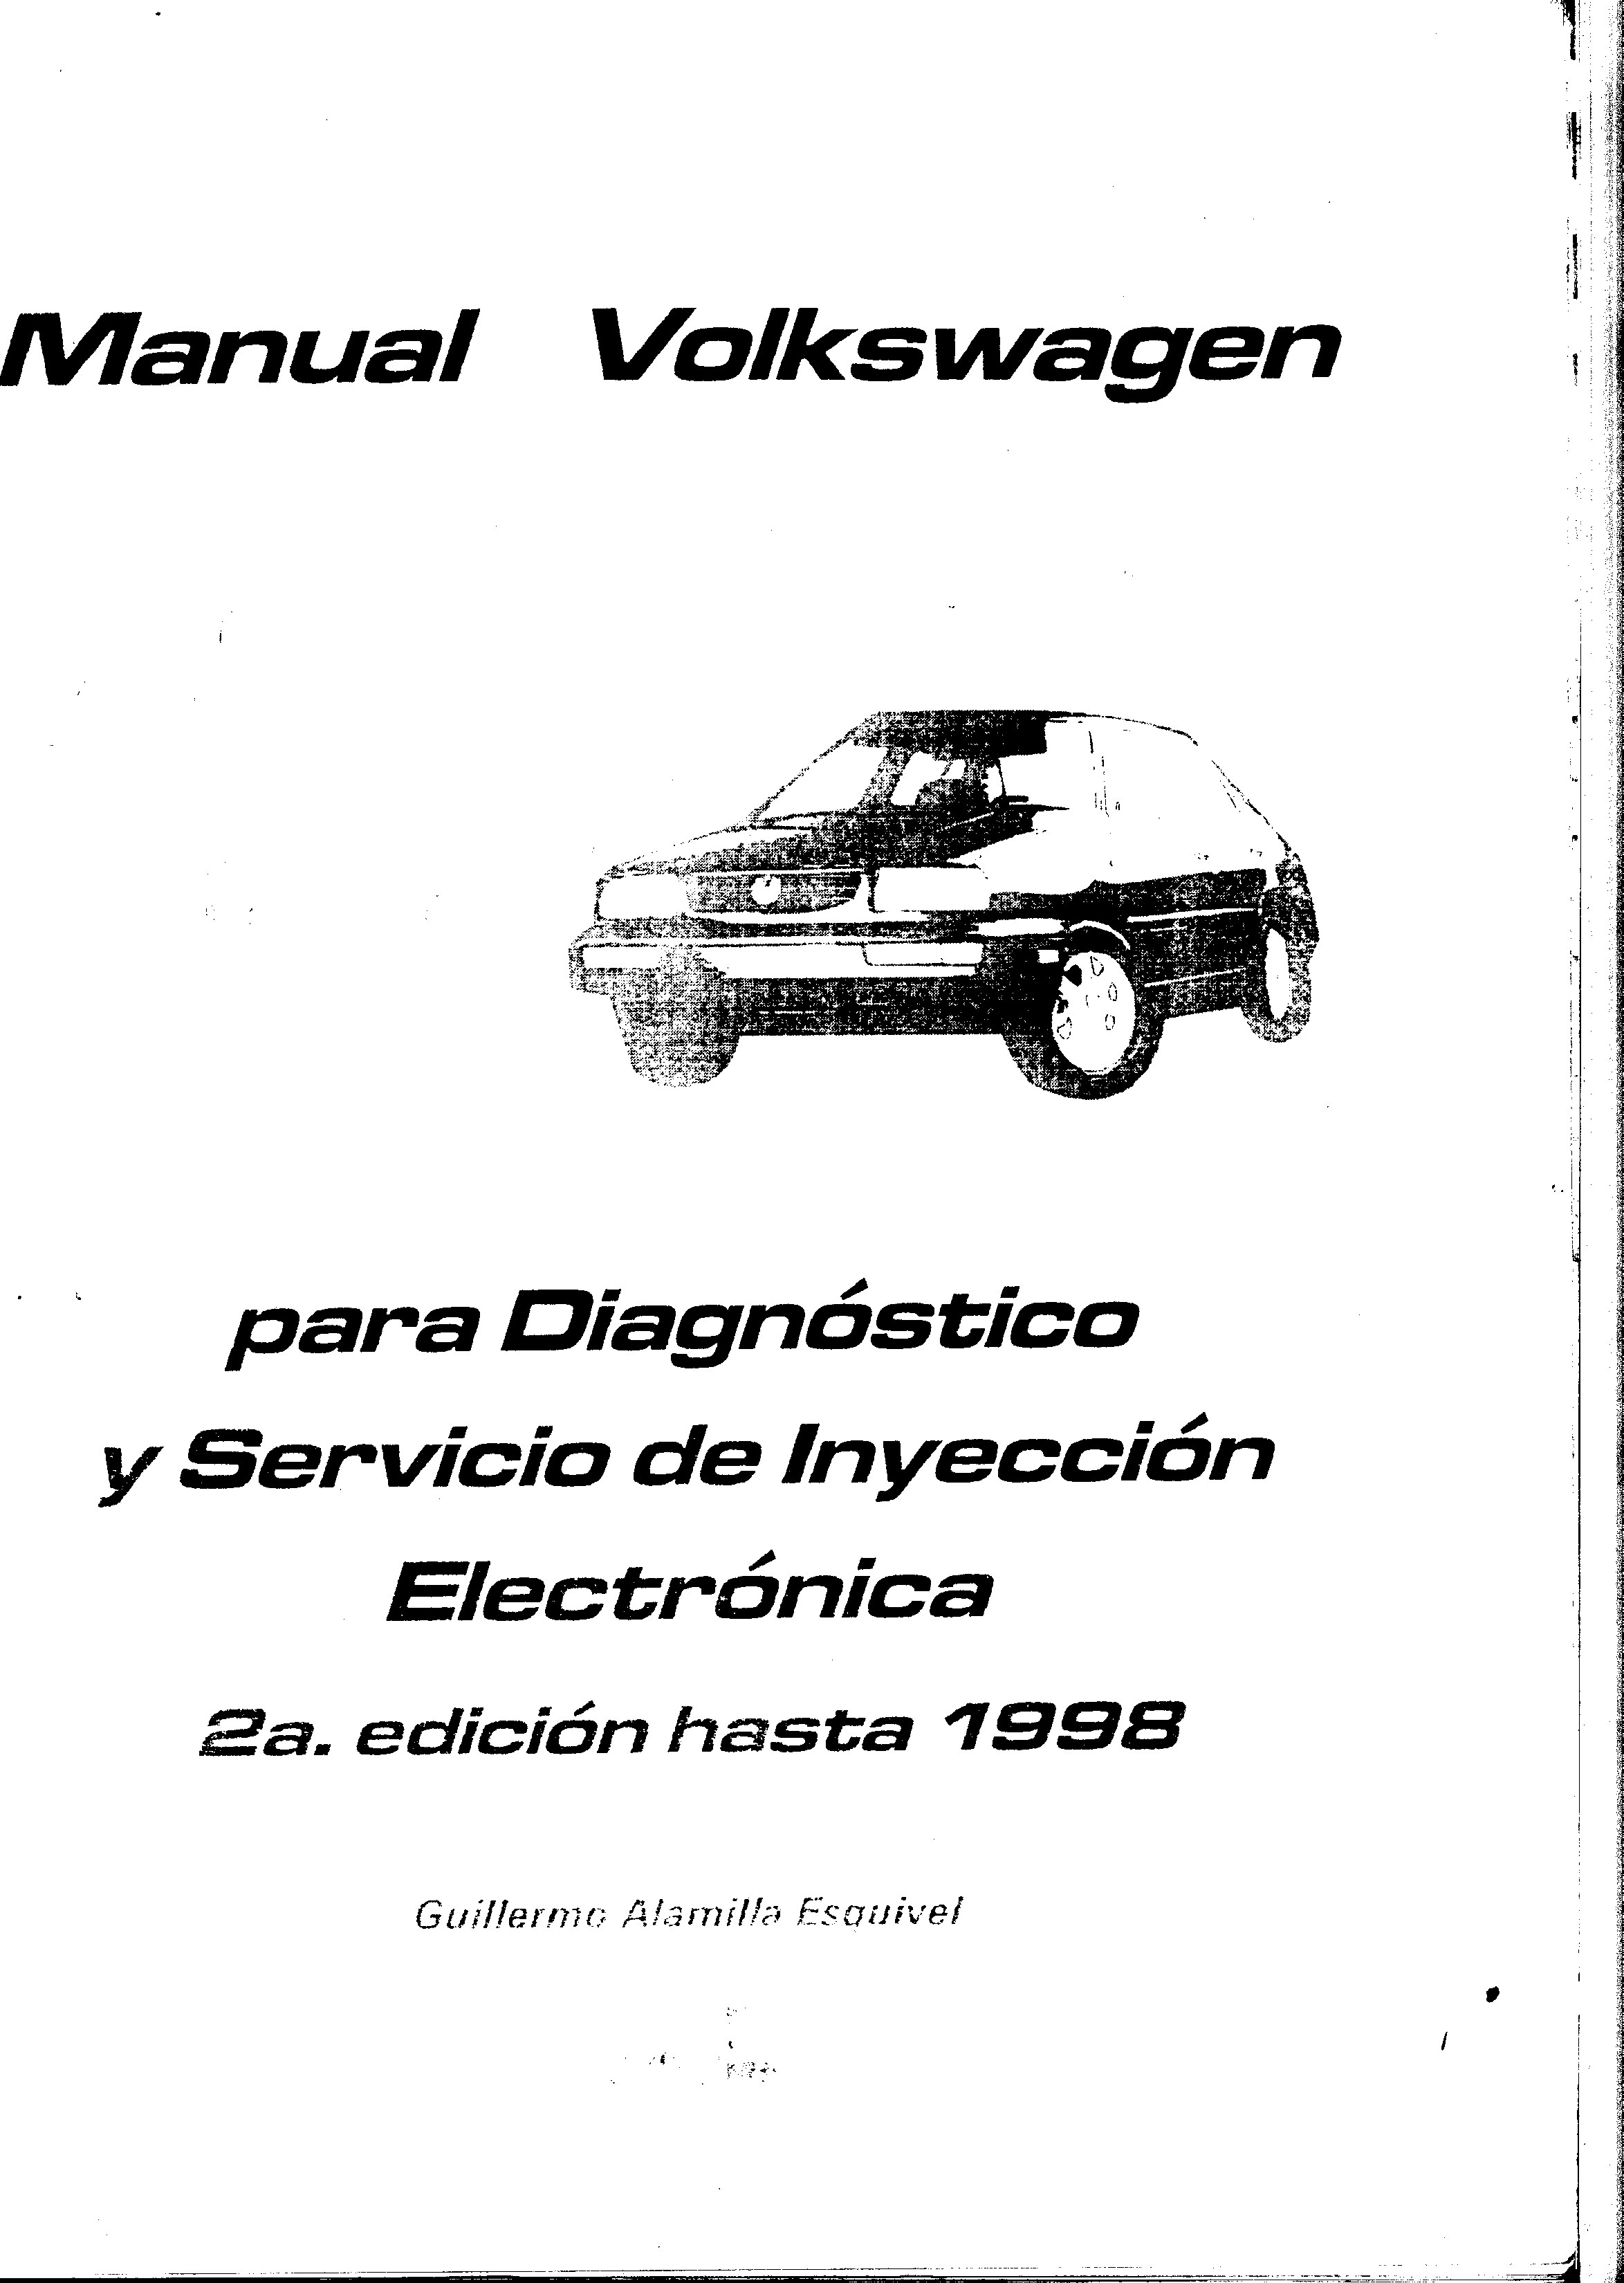 Volkswagen hasta 1998 manual de vw hasta 1998.BMP